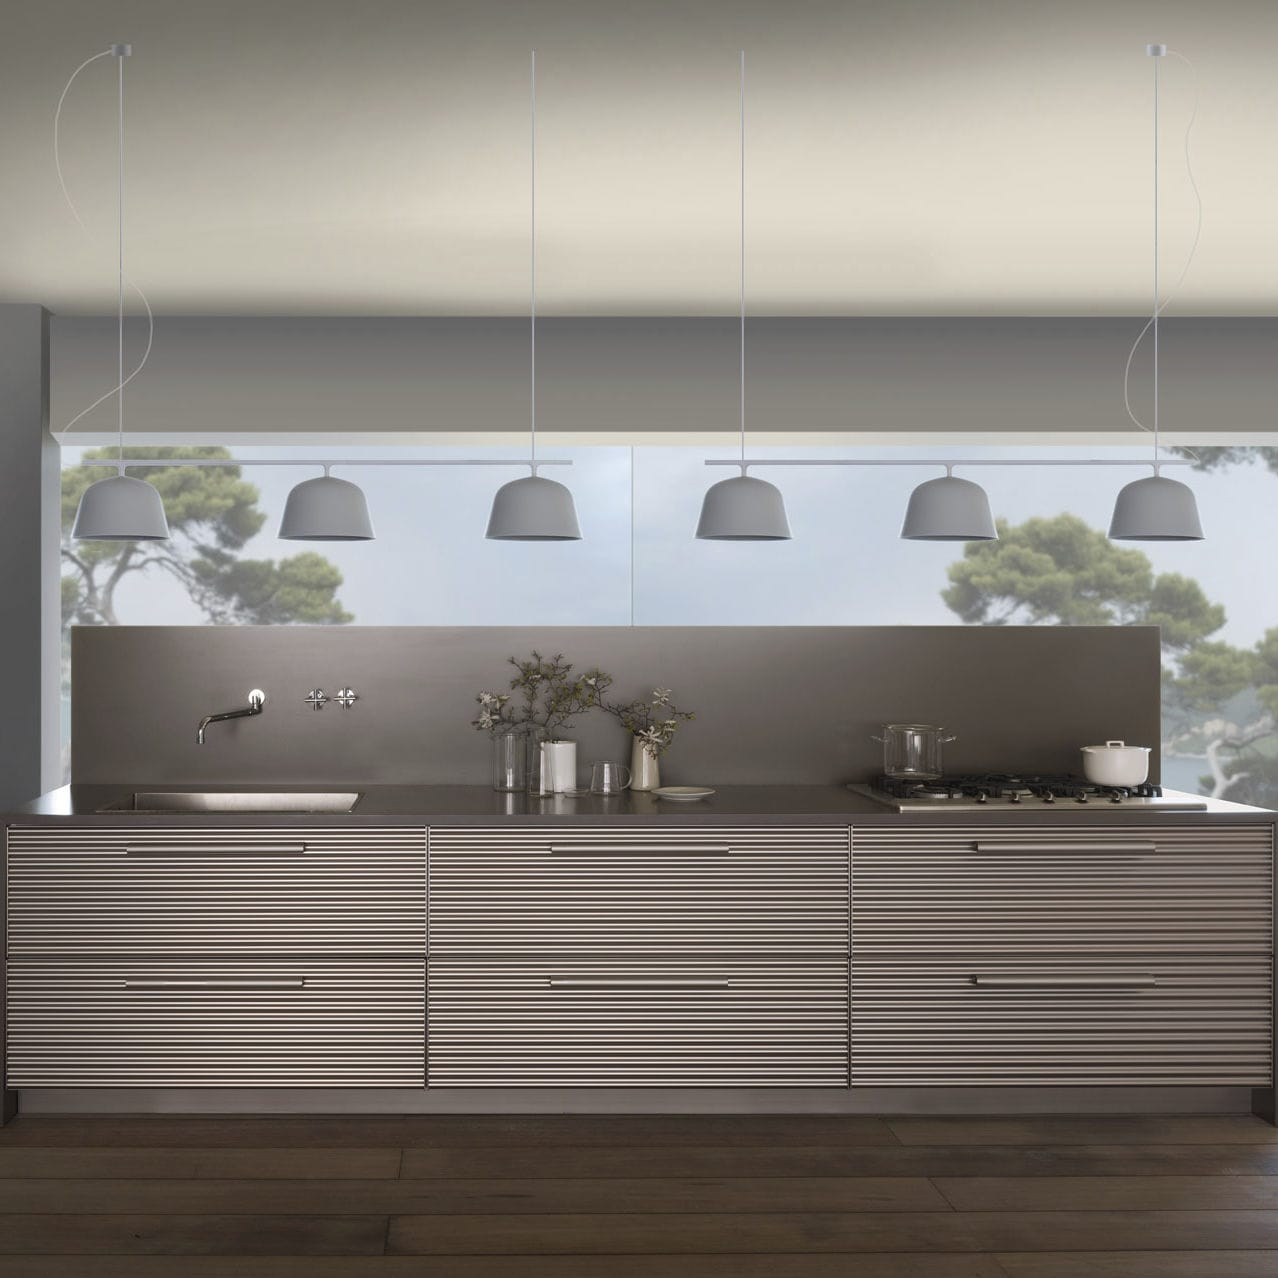 Schiffini Kuche Contemporary Kitchen Aluminum Island By Vico Magistretti